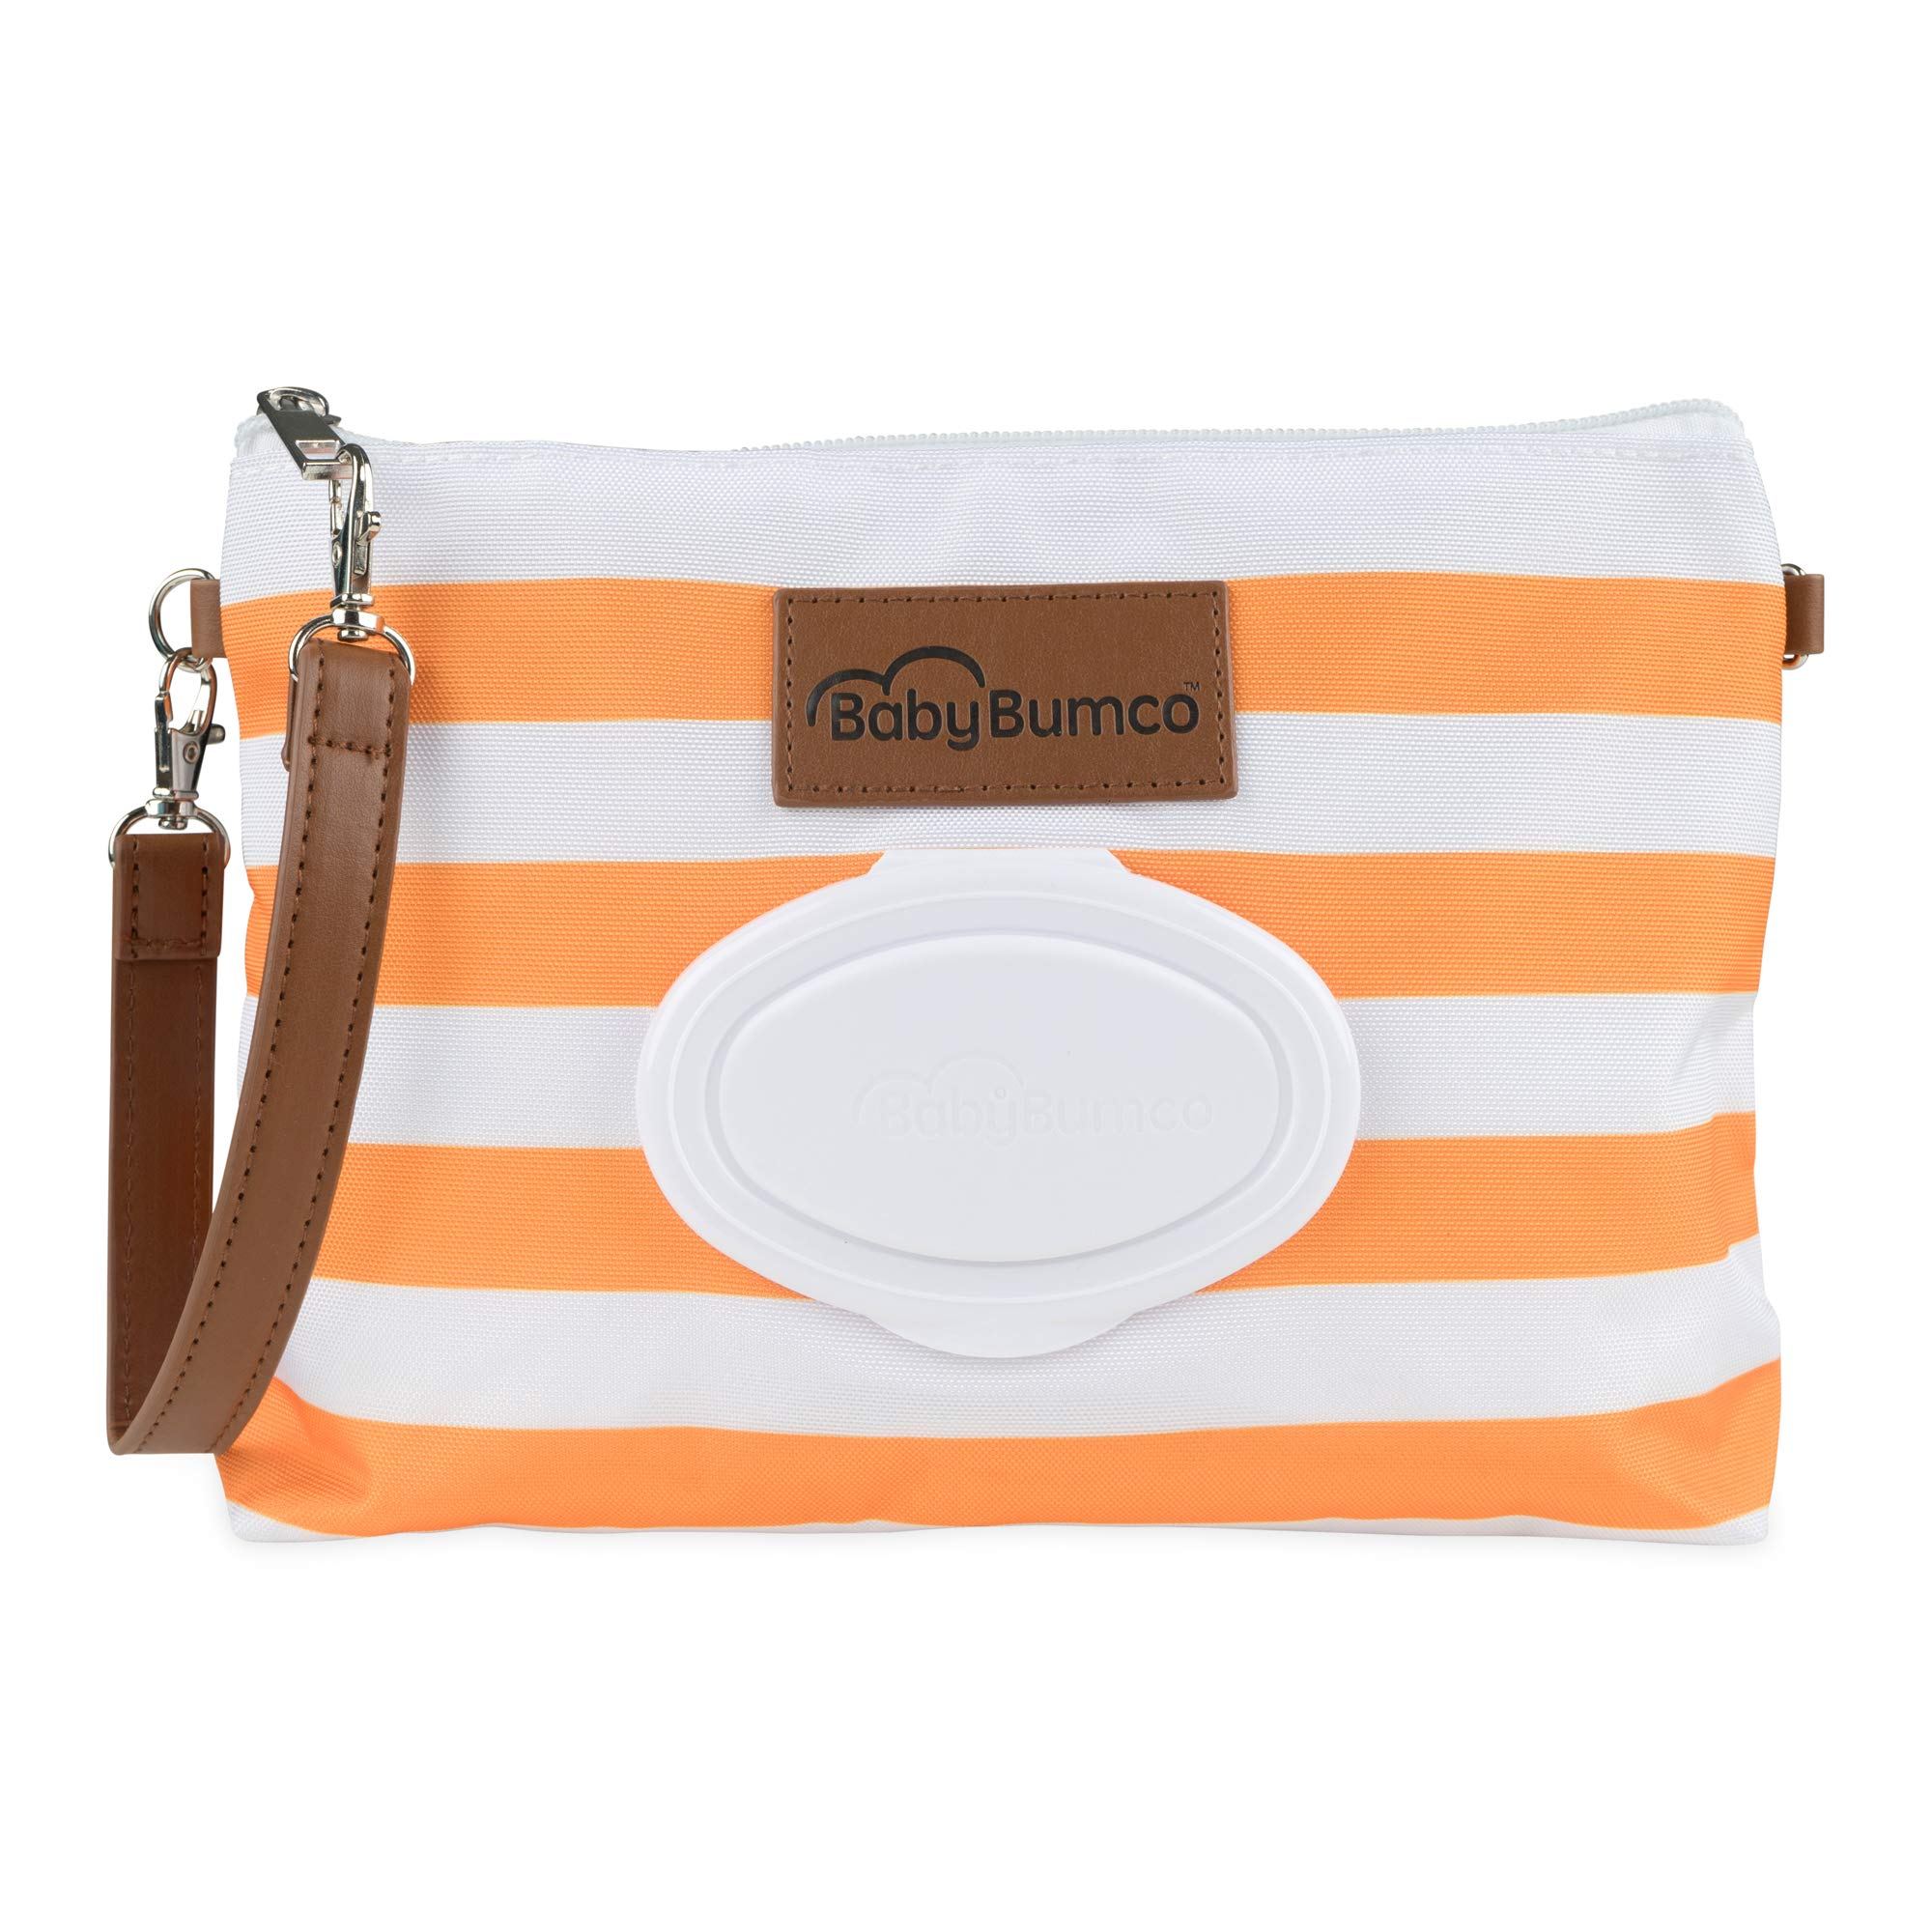 Baby Bumco Diaper Clutch Bag - Water Resistant; Lightweight; Refillable Wipes Dispenser; Portable Changing Kit (Orange)